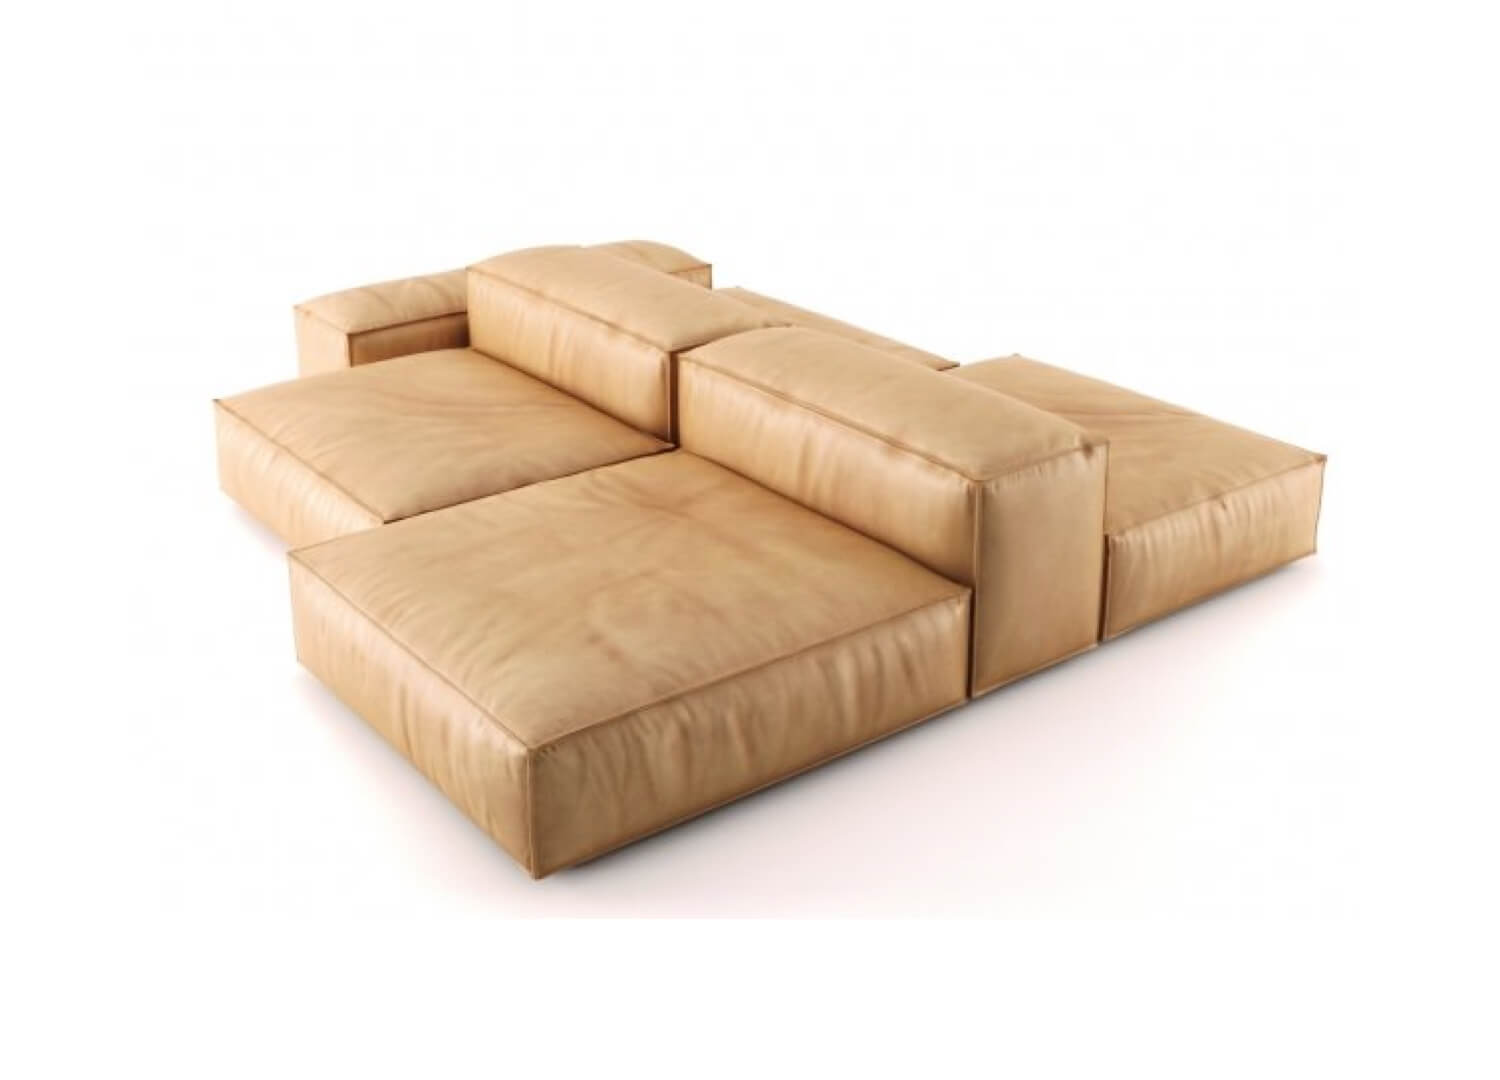 Extrasoft Sofa By Living Divani For Space Furniture Est